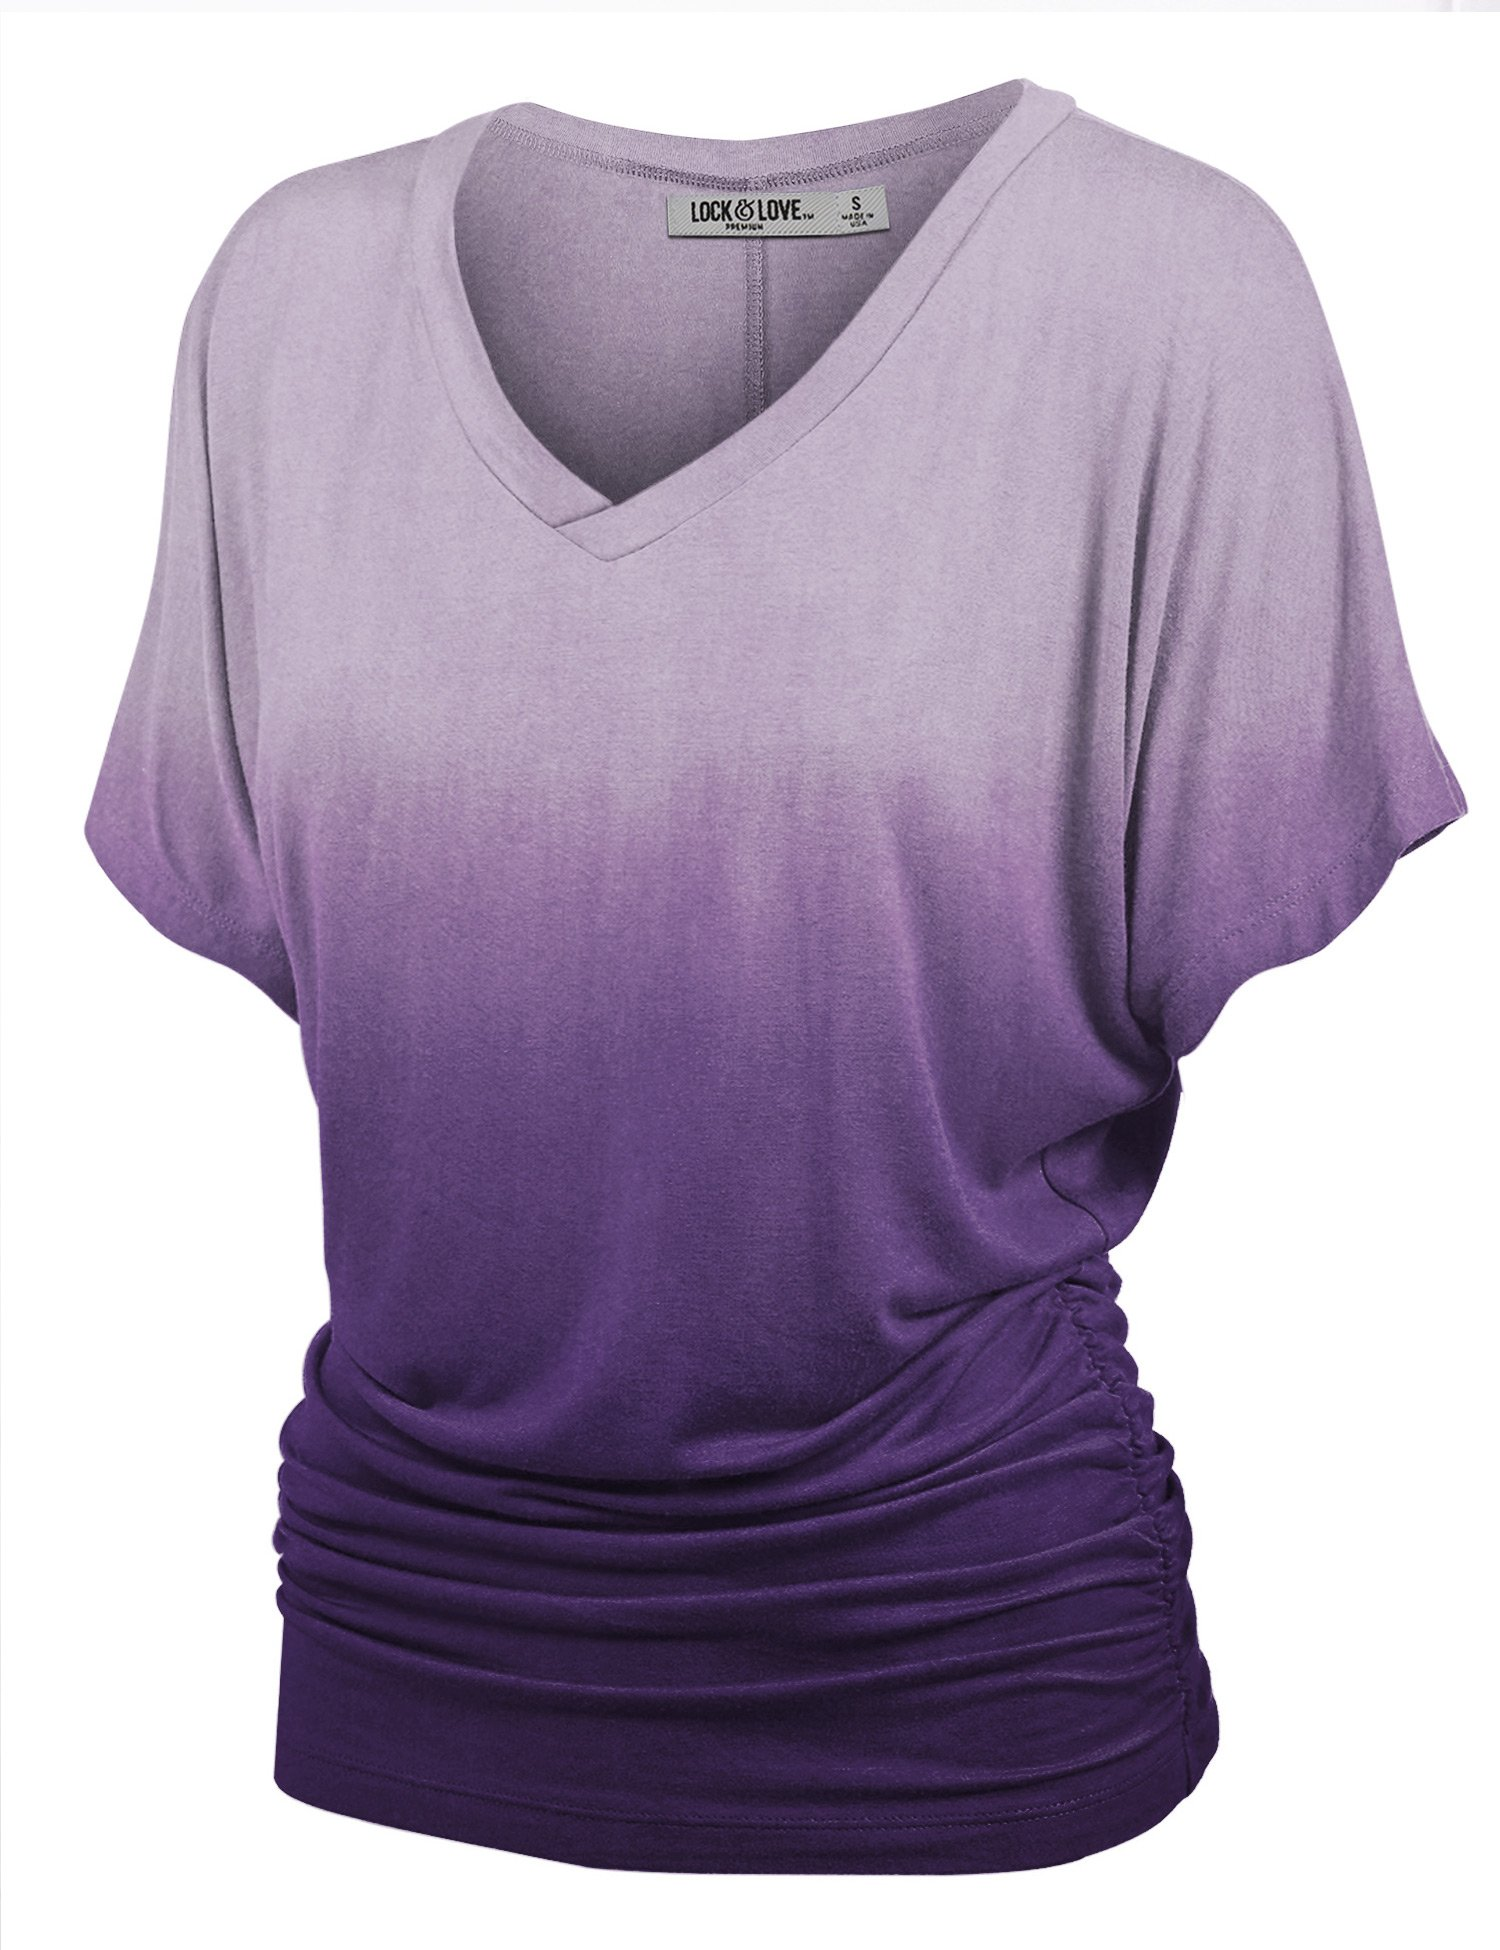 WT1115 Womens V Neck Short Sleeve Dip Dye Dolman Top with Side Shirring S Purple